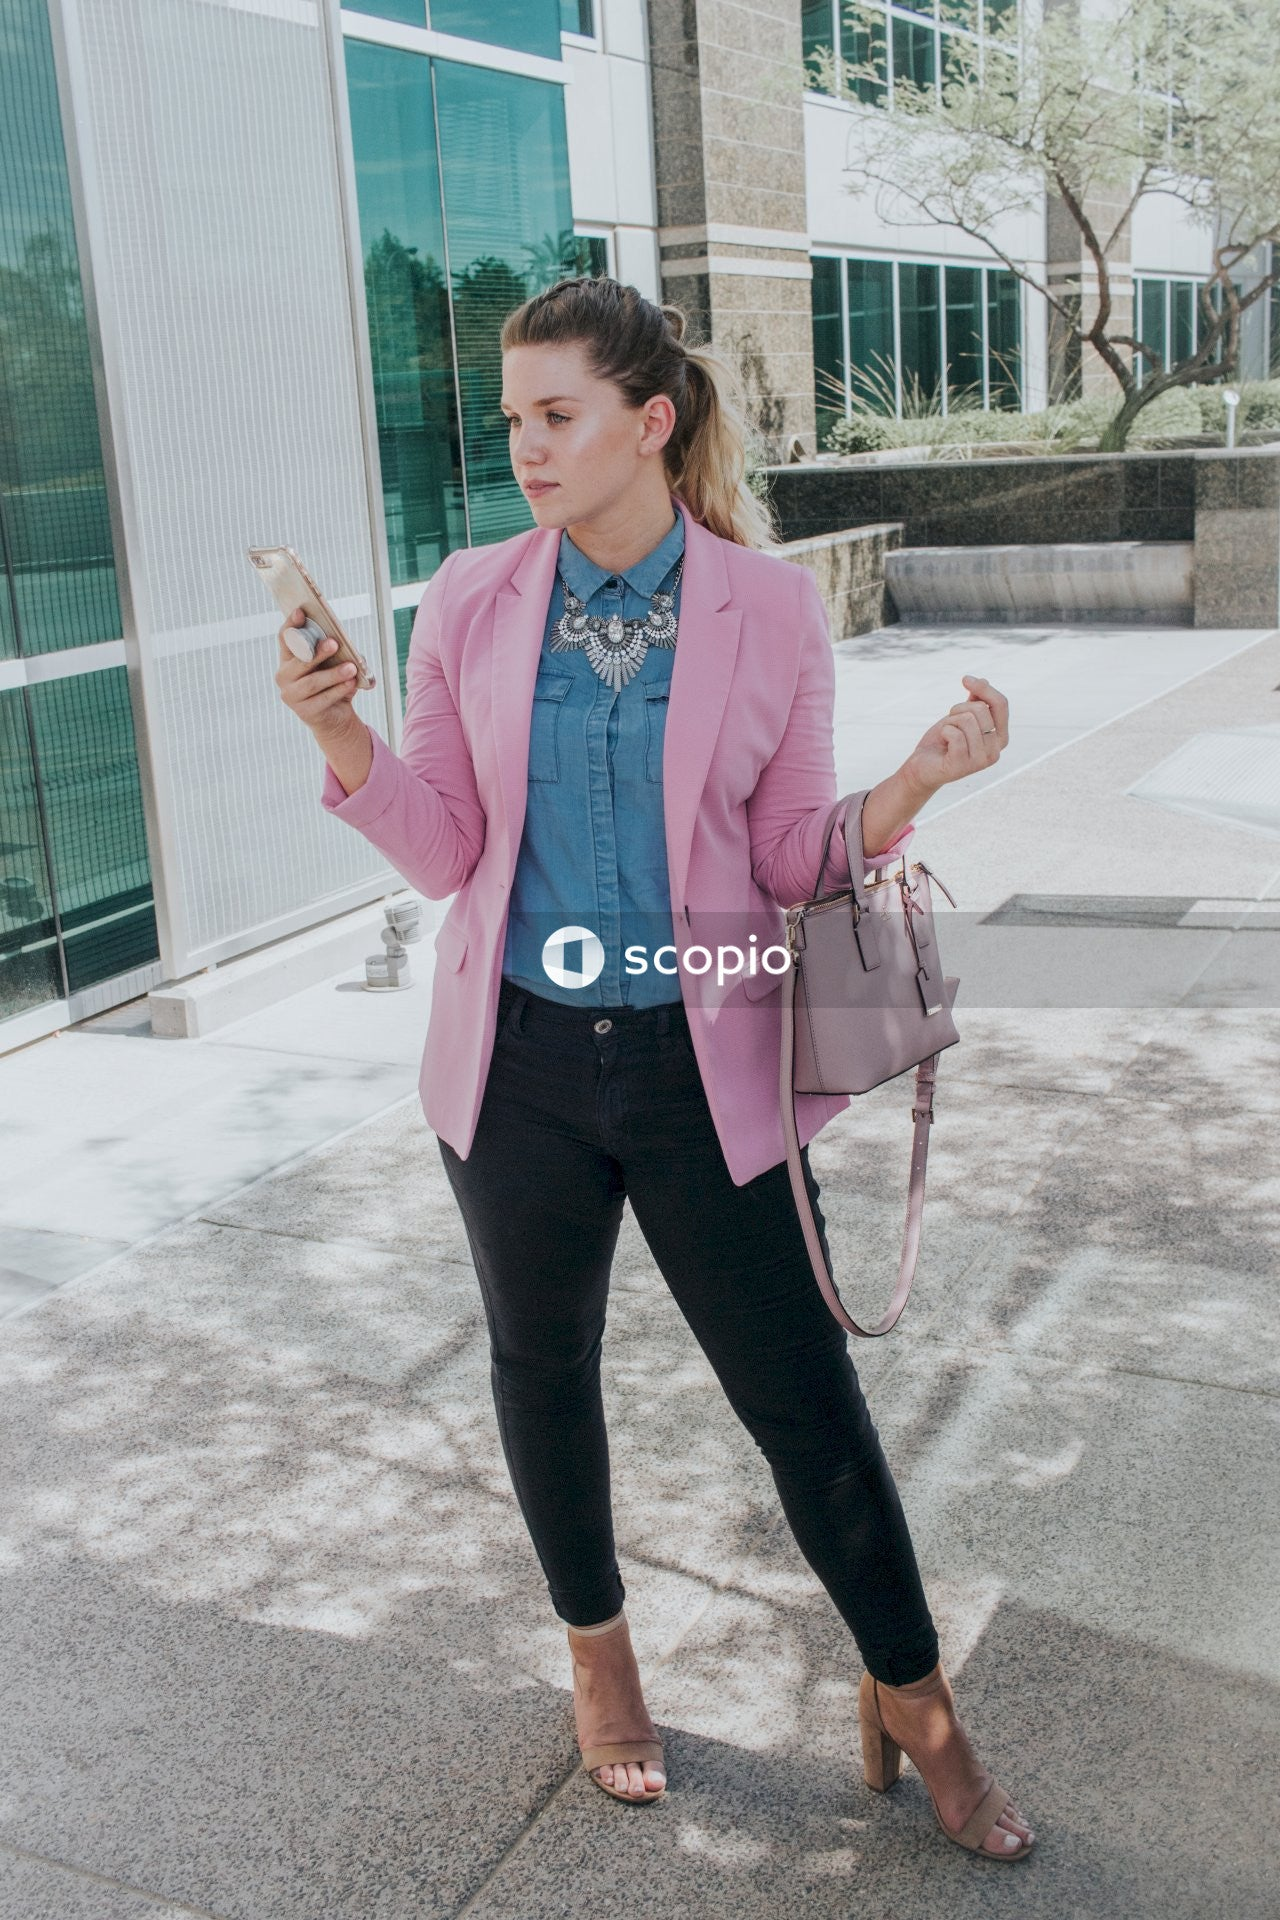 Woman in pink blazer and black pants standing on gray concrete floor